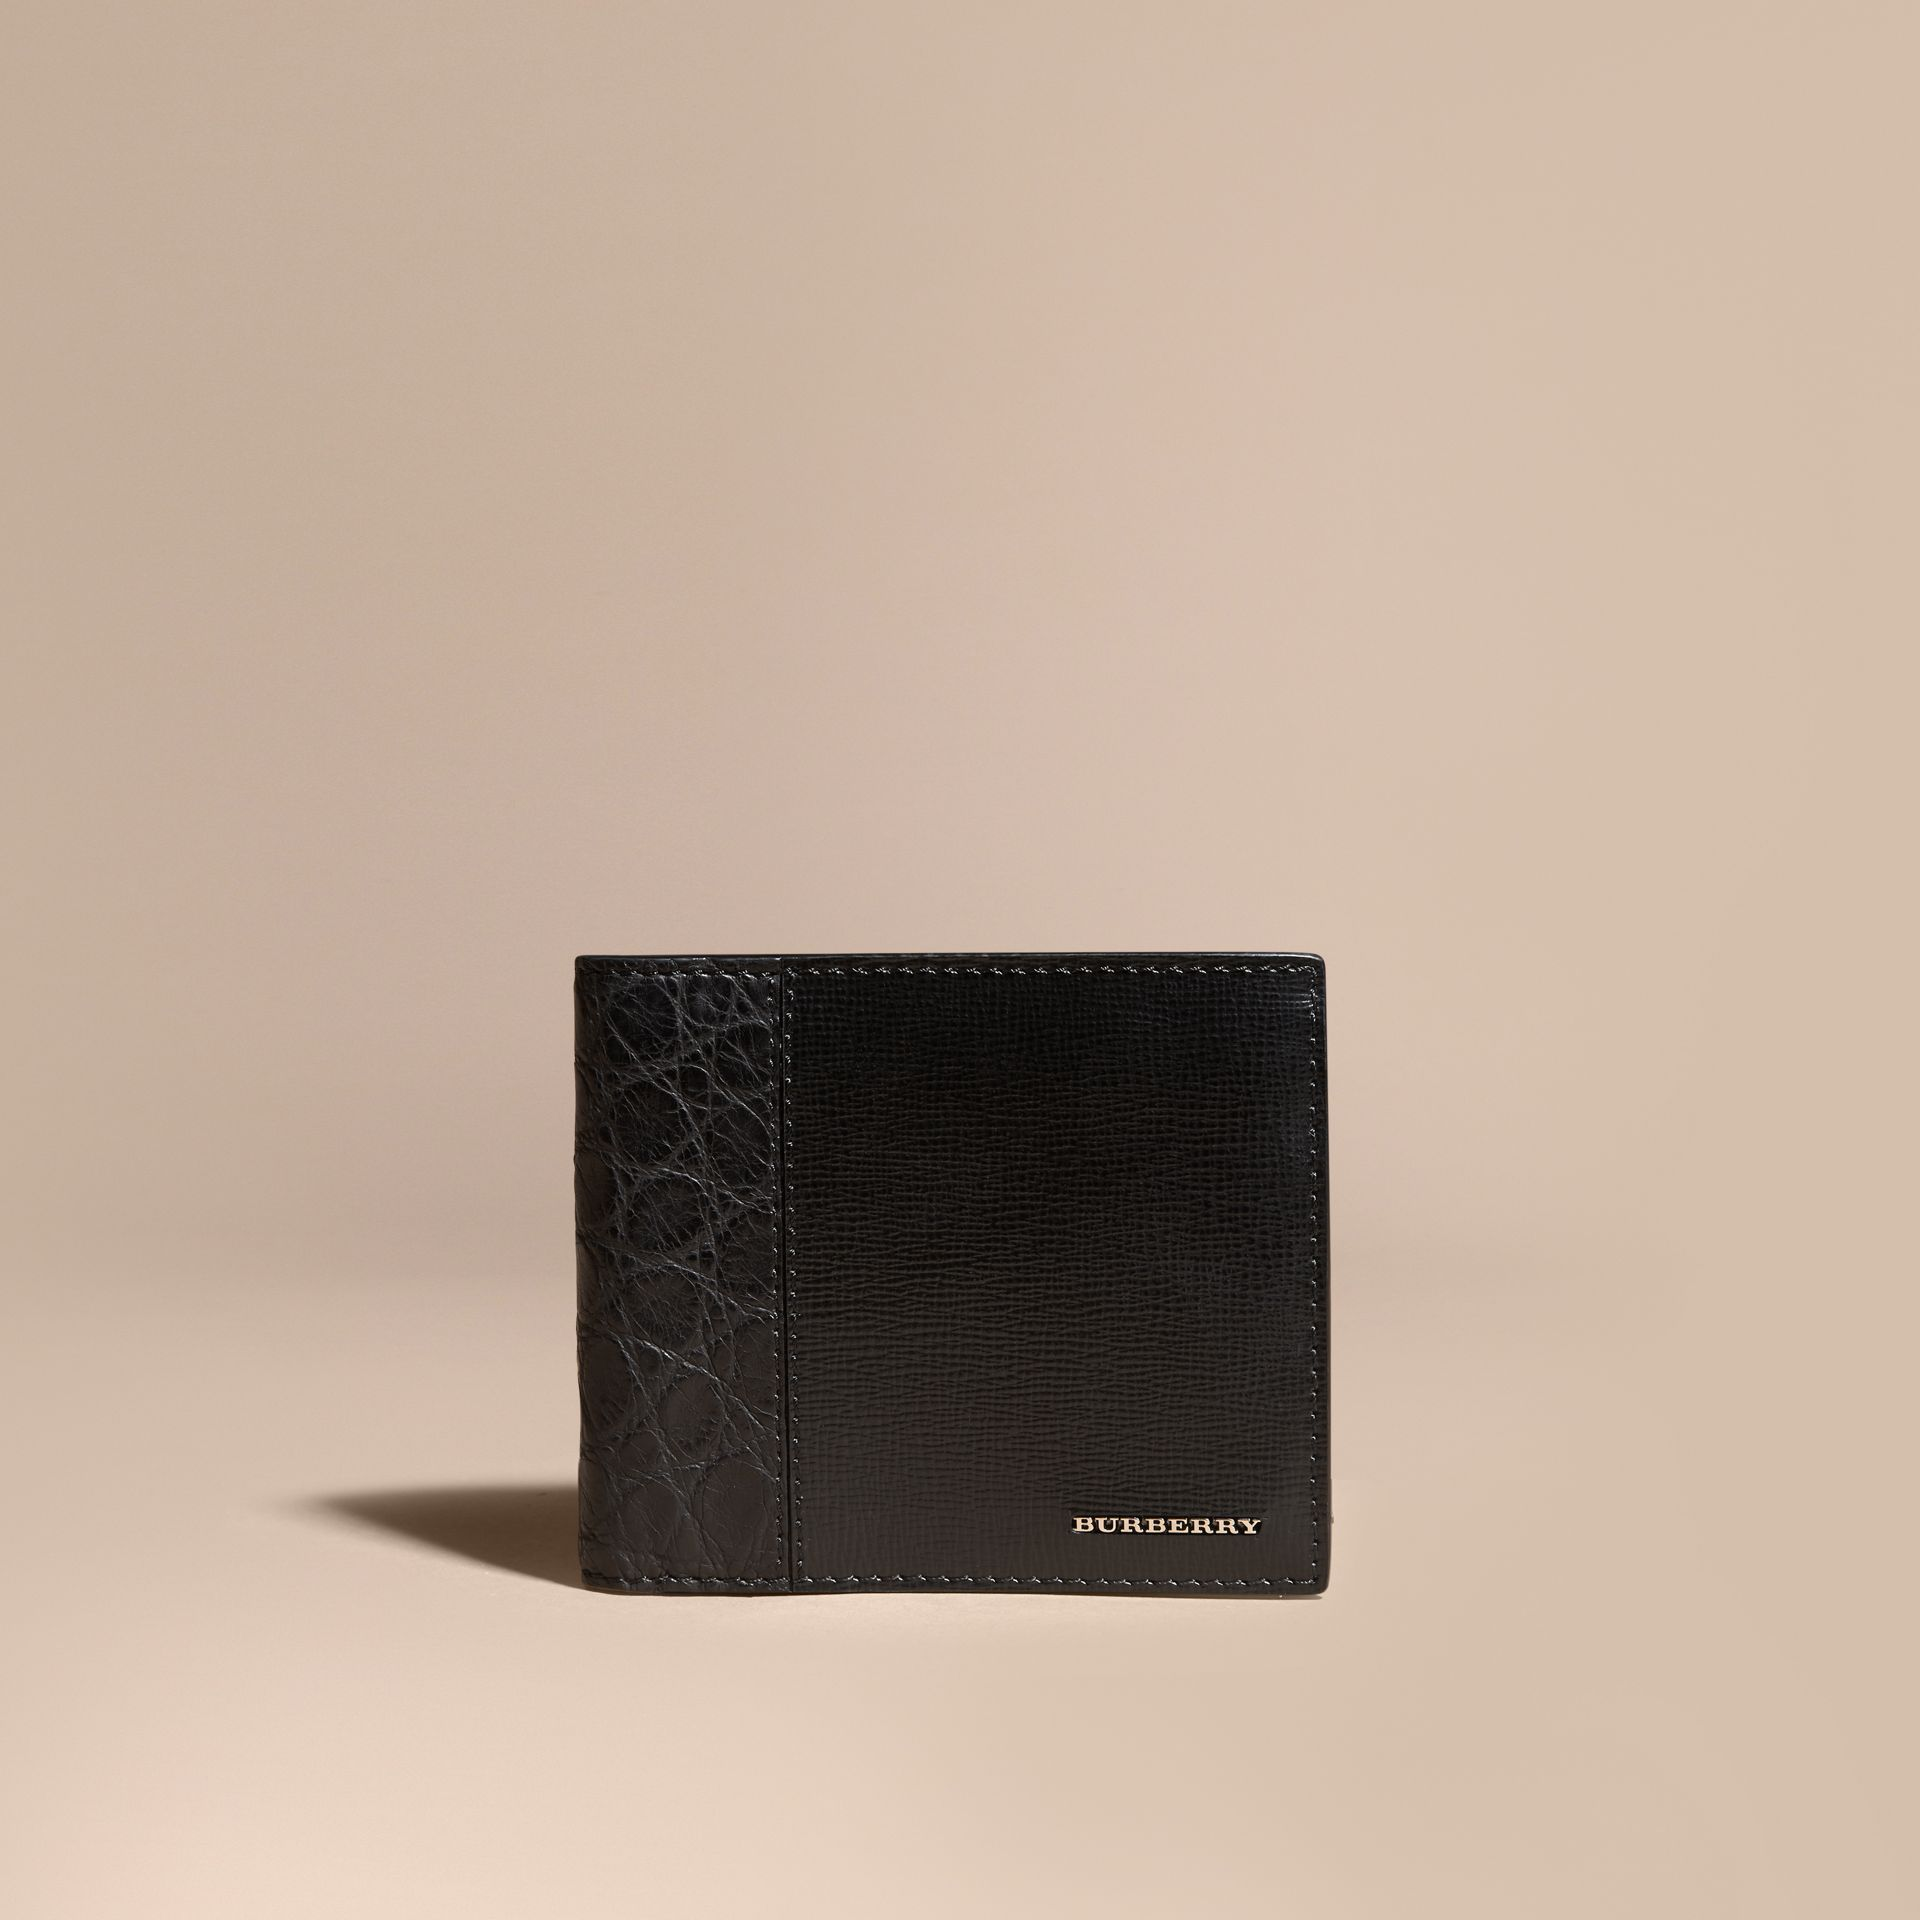 Leather and Alligator International Bifold Wallet in Black - Men | Burberry Australia - gallery image 6